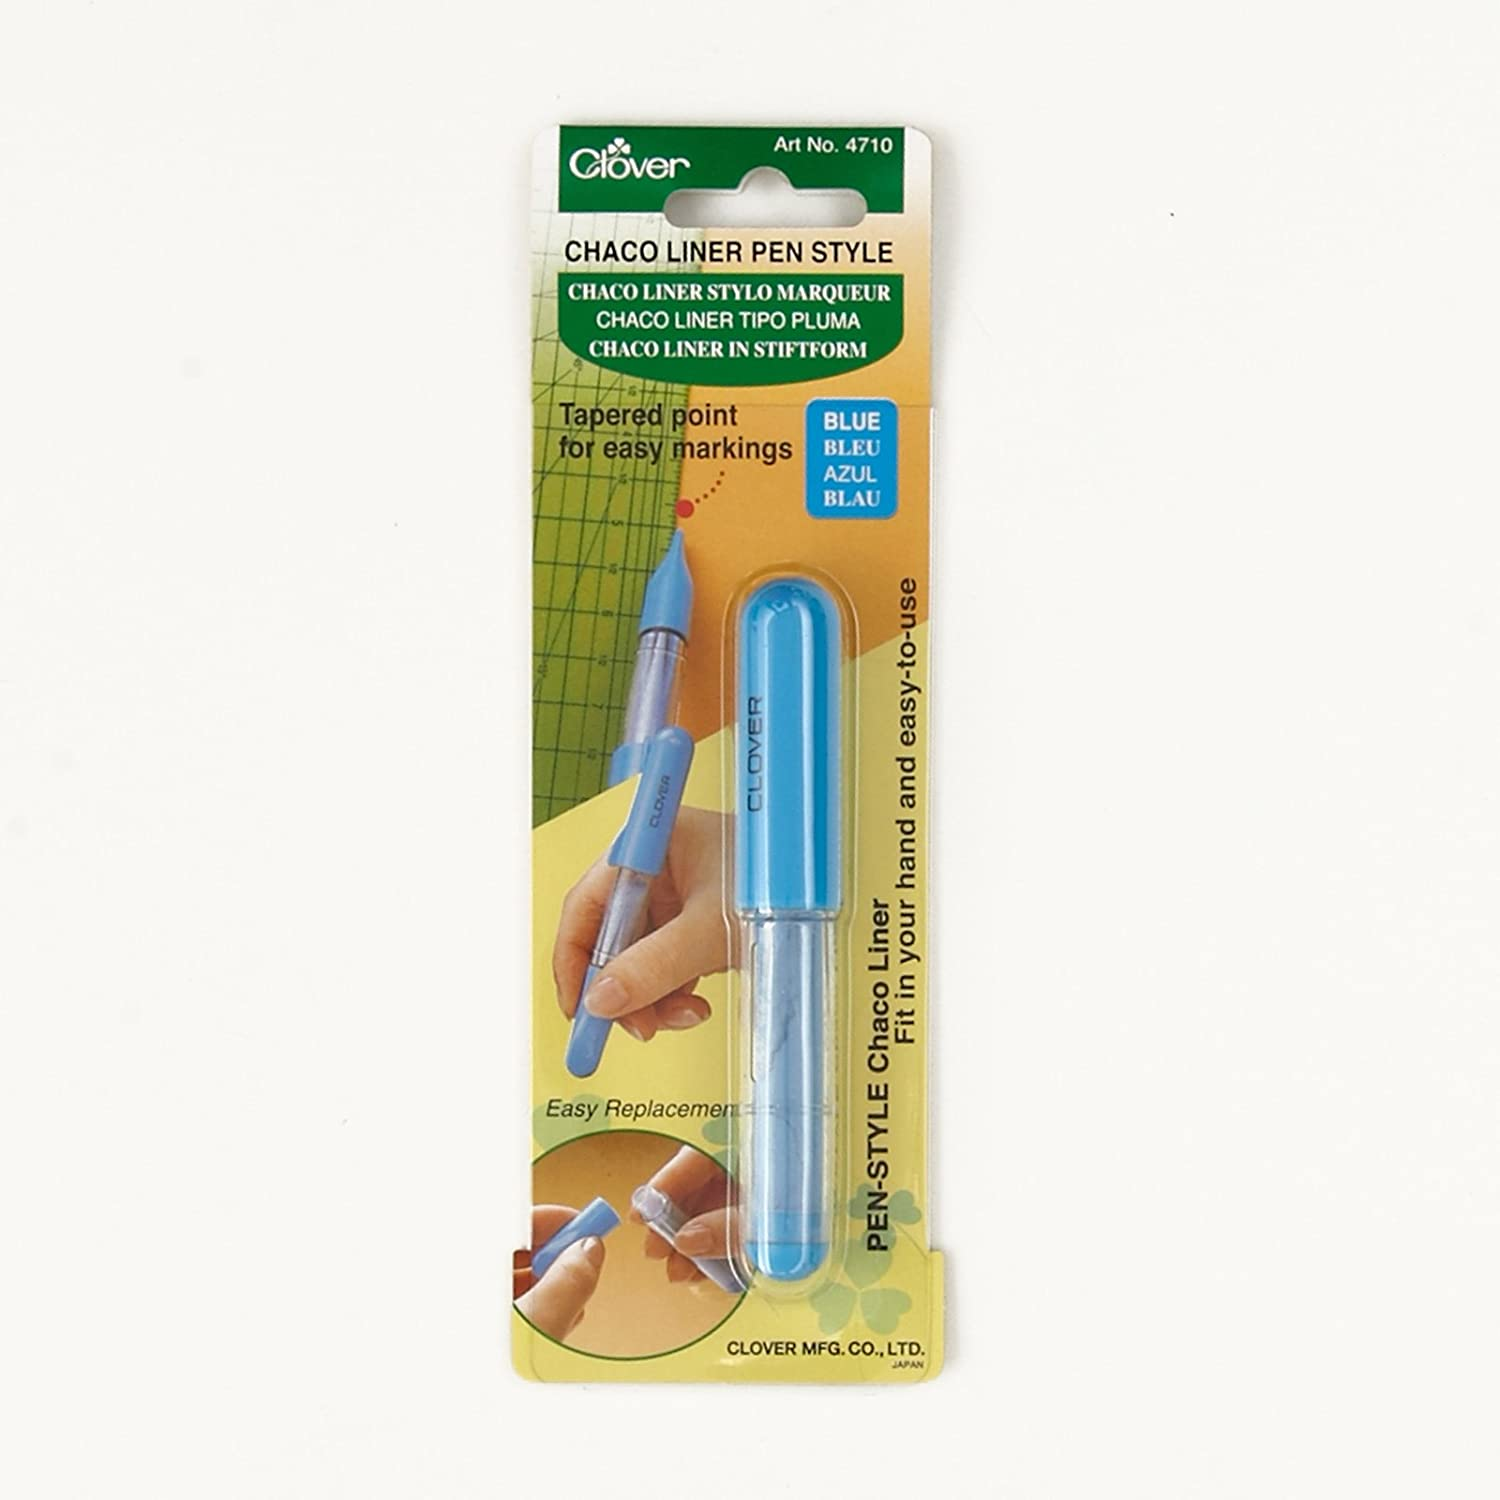 Clover Pen Style Chaco Liner Silver